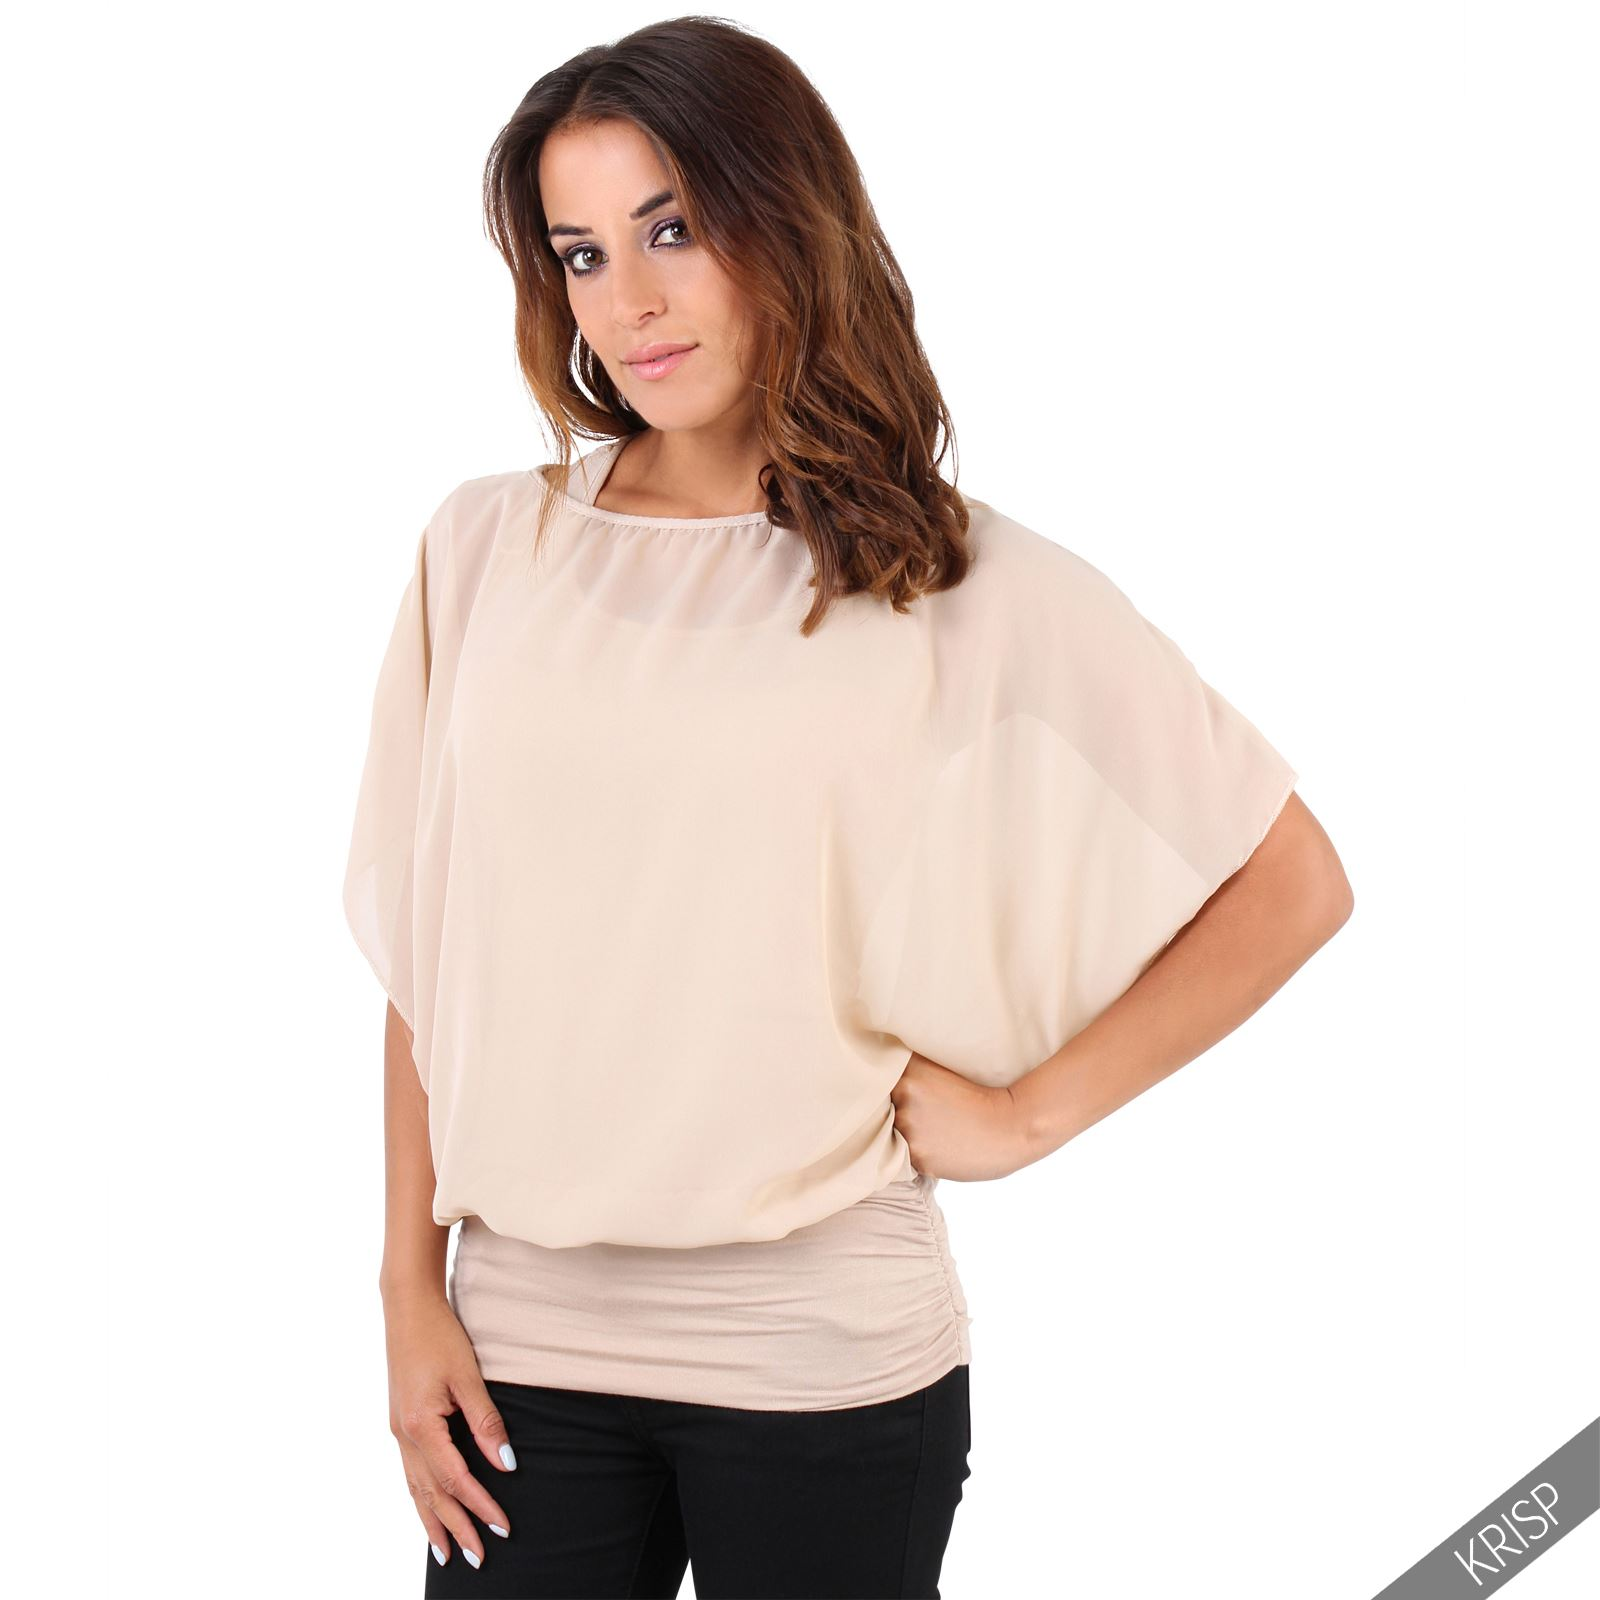 Find batwing sleeve tops at ShopStyle. Shop the latest collection of batwing sleeve tops from the most popular stores - all in one place.